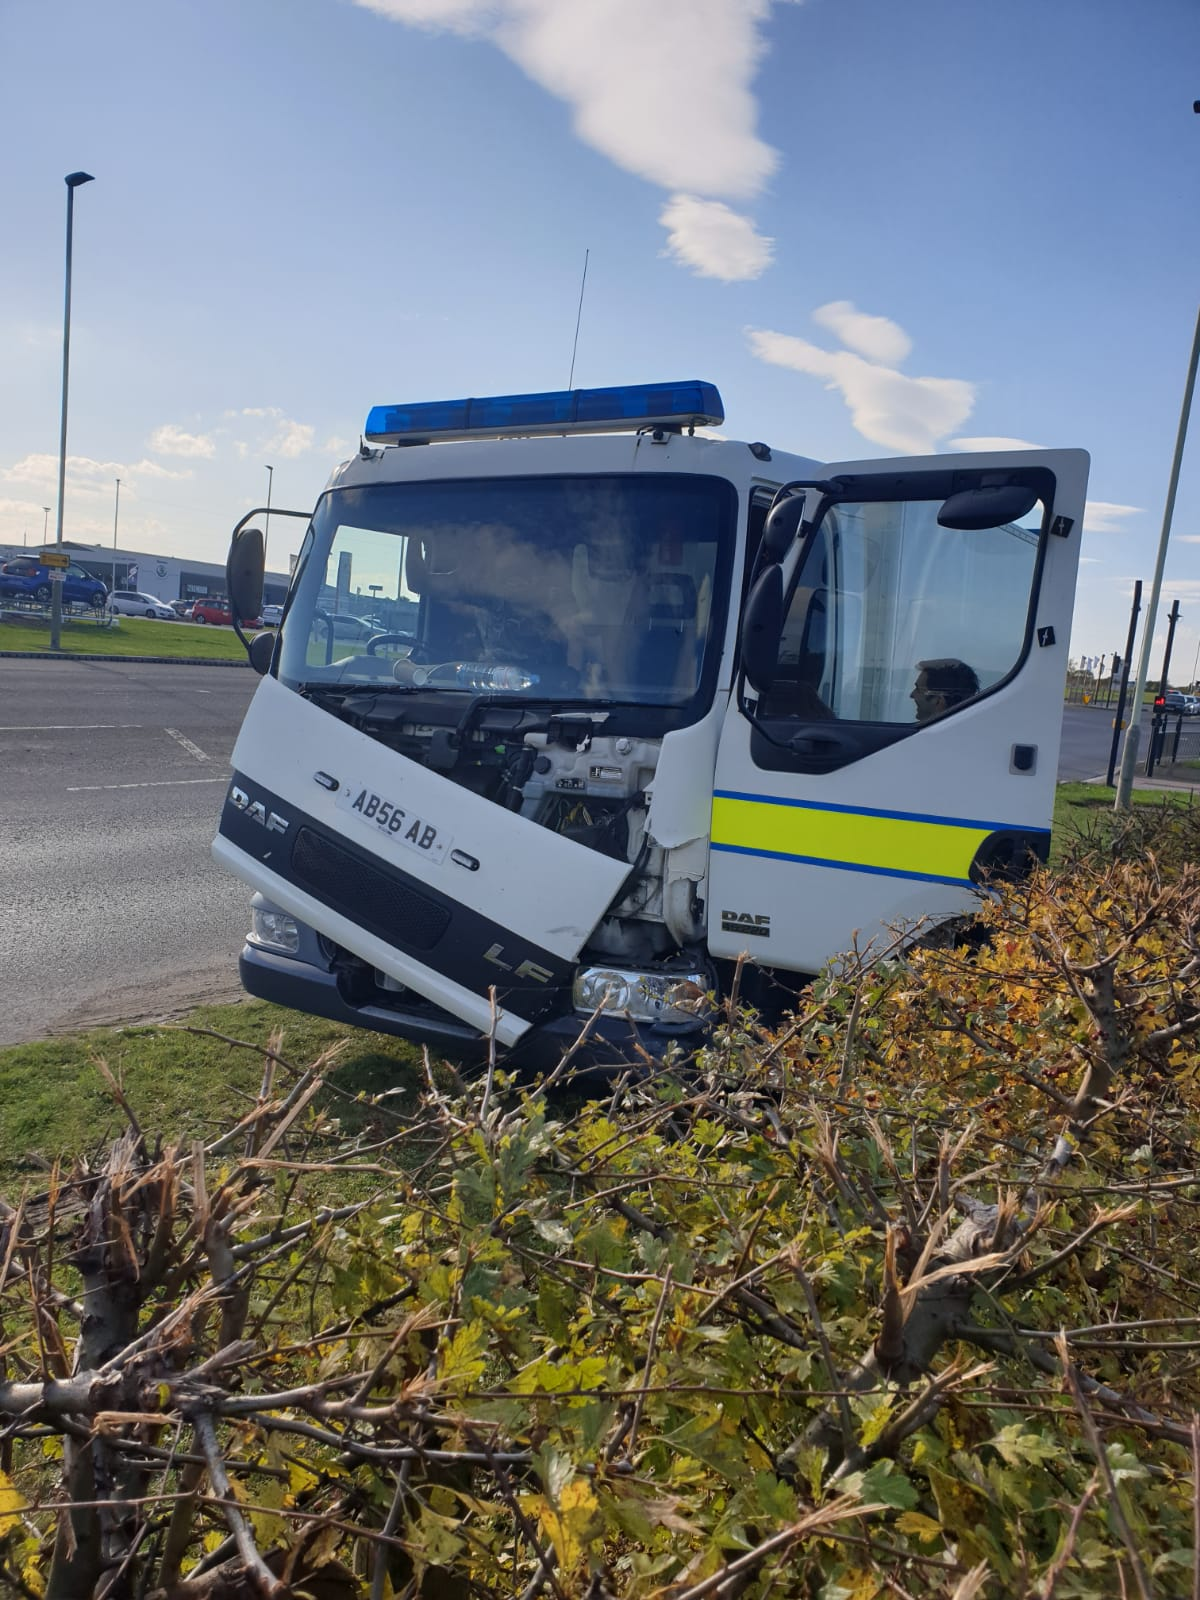 Bomb disposal vehicle' involved in crash in Darlington